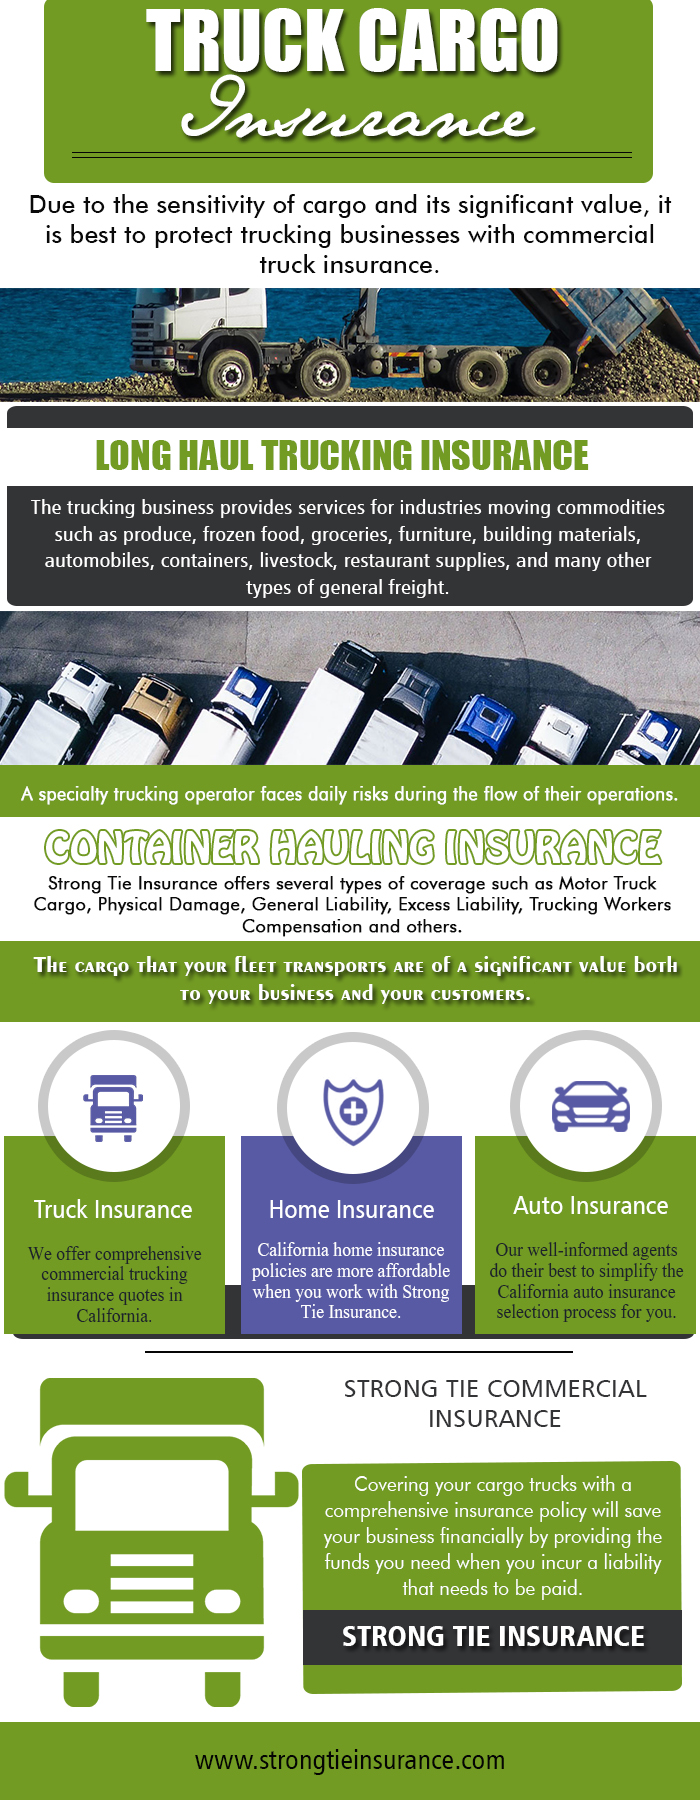 Long Haul Trucking Insurance